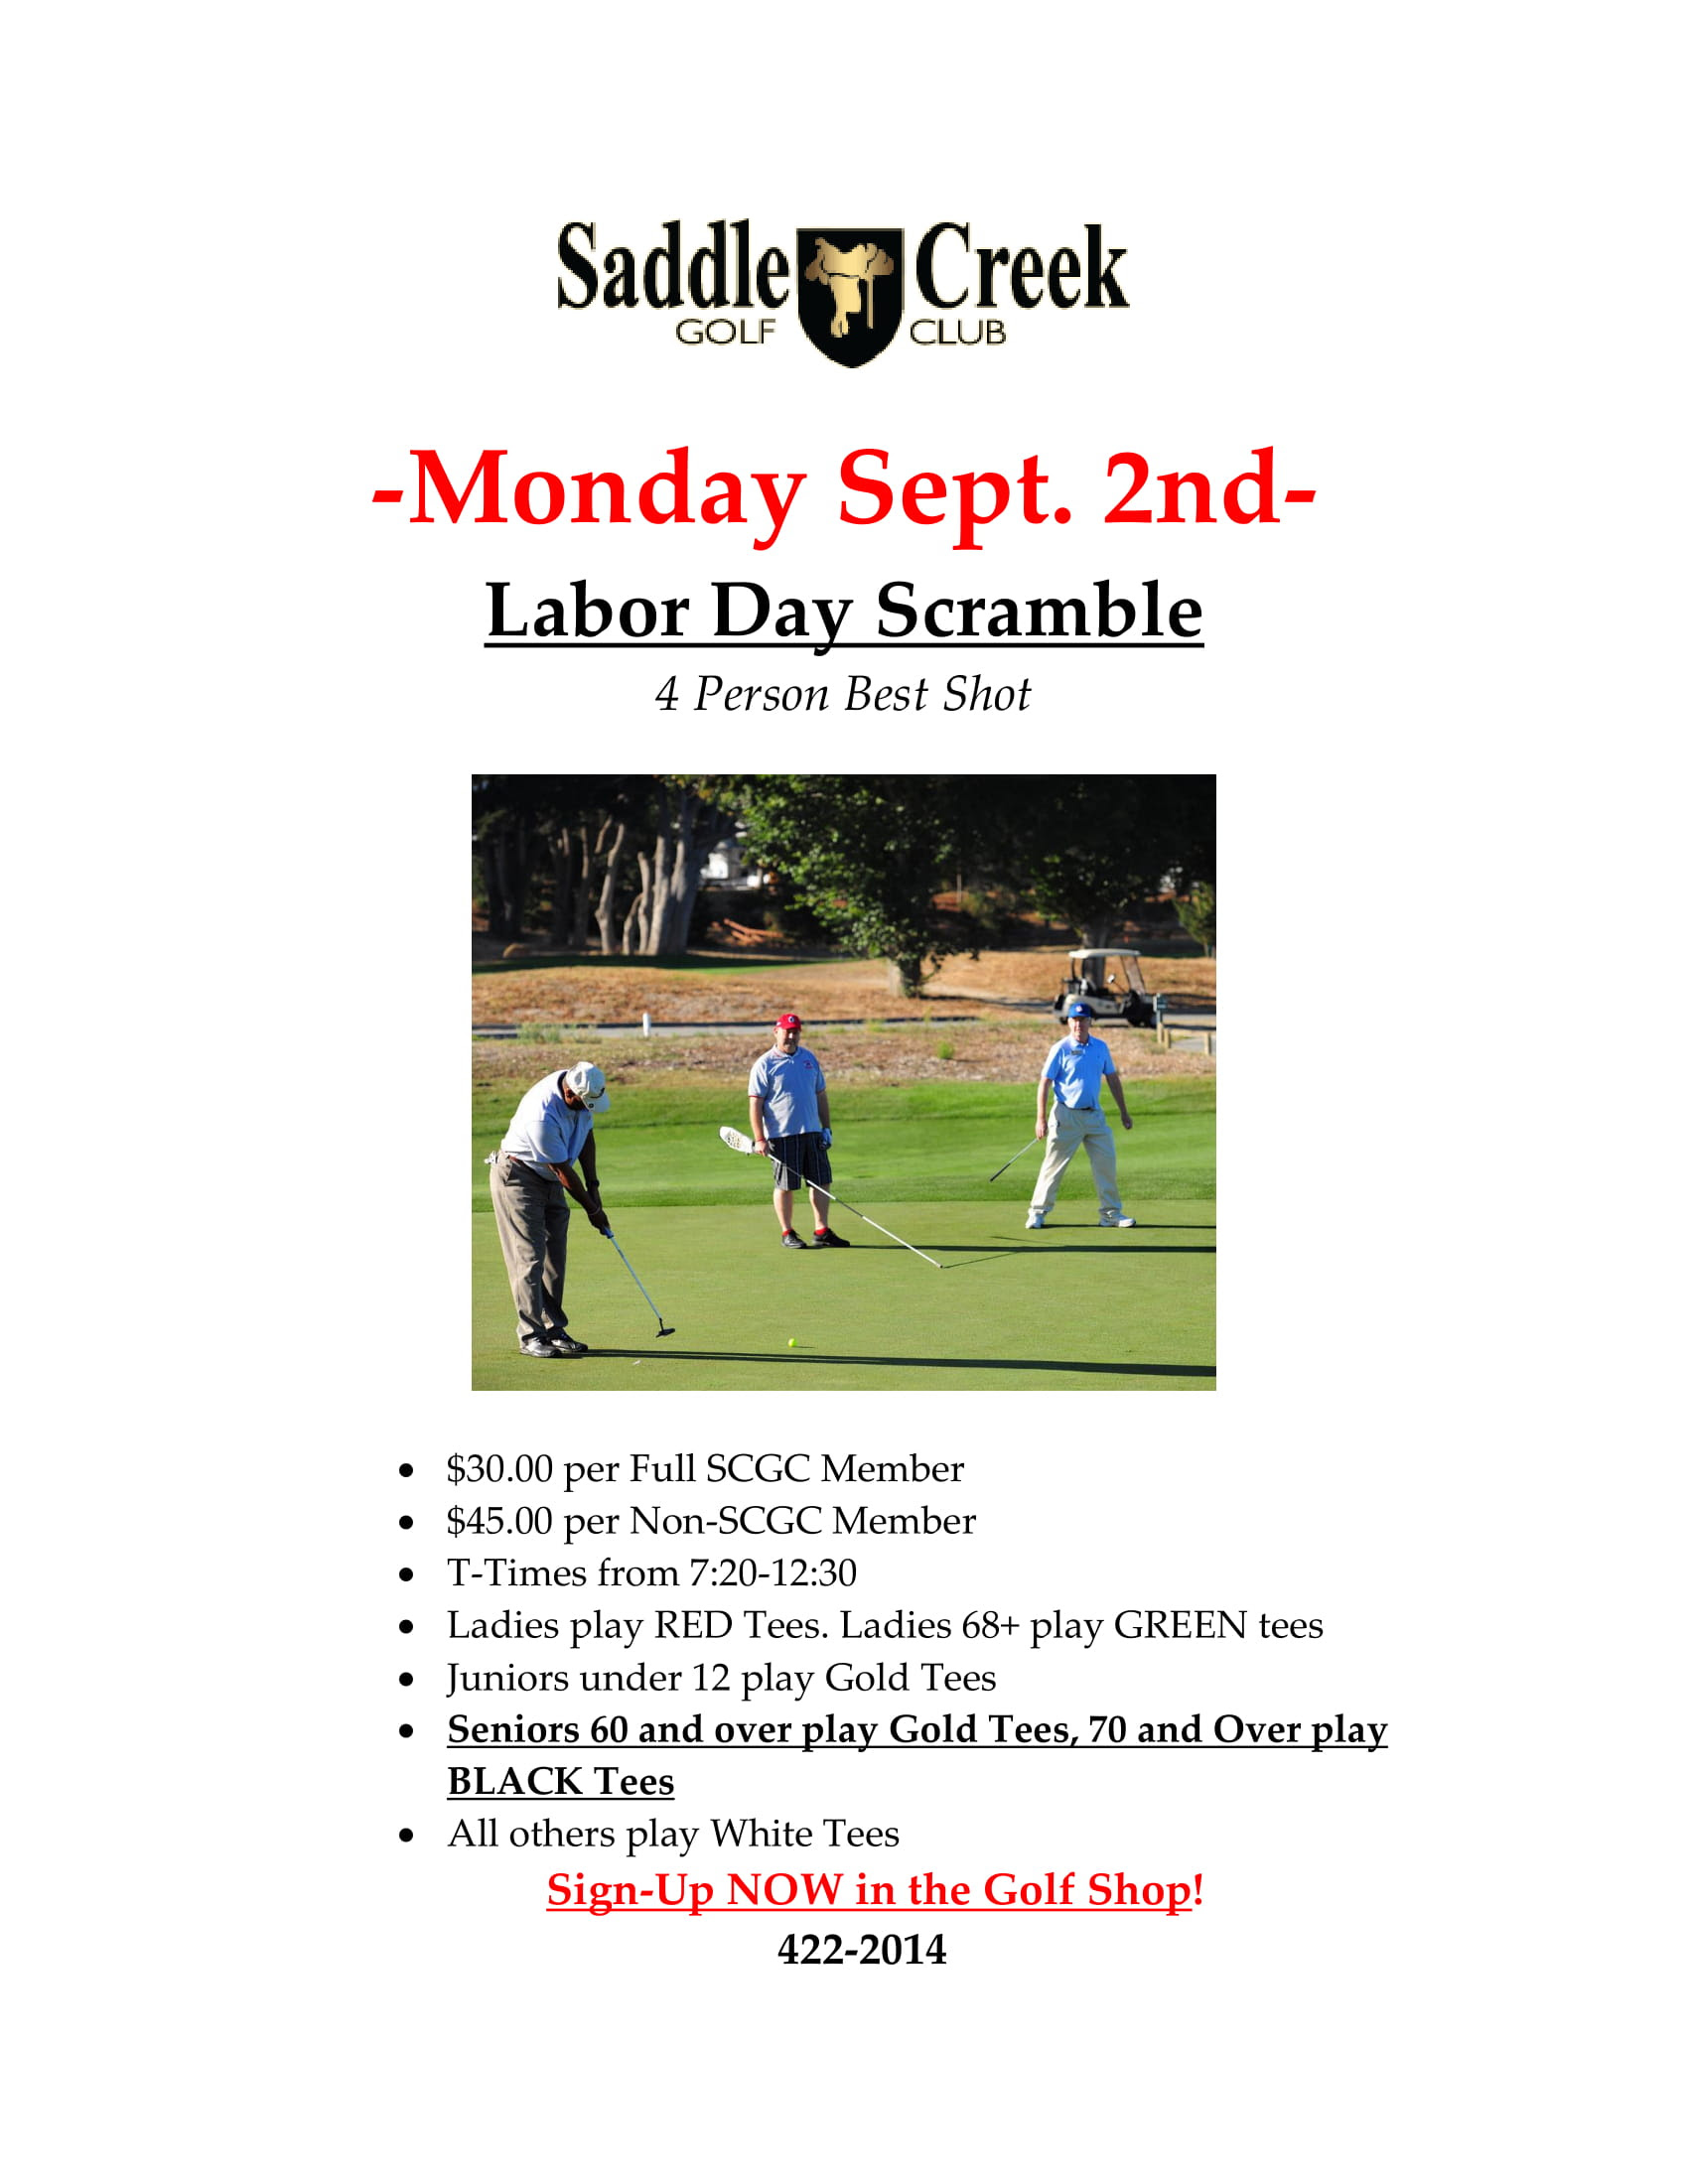 Saddle Creek Labor Day